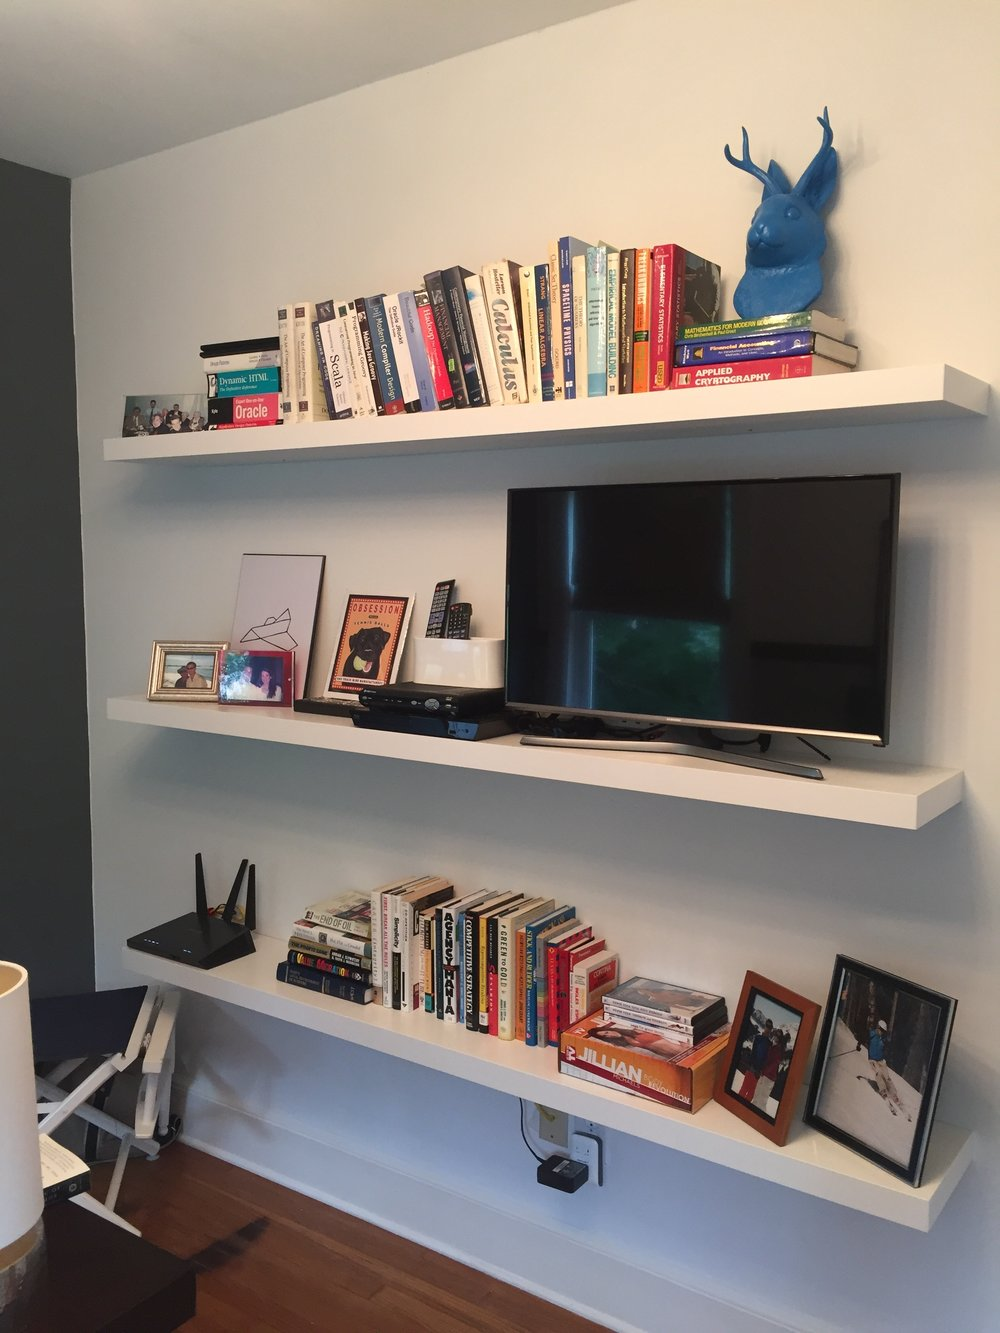 the best floating shelf rebecca lynne thorburn img shelves for books our previous house used five white vertical storage office supplies mementos etc computer table with bookshelf